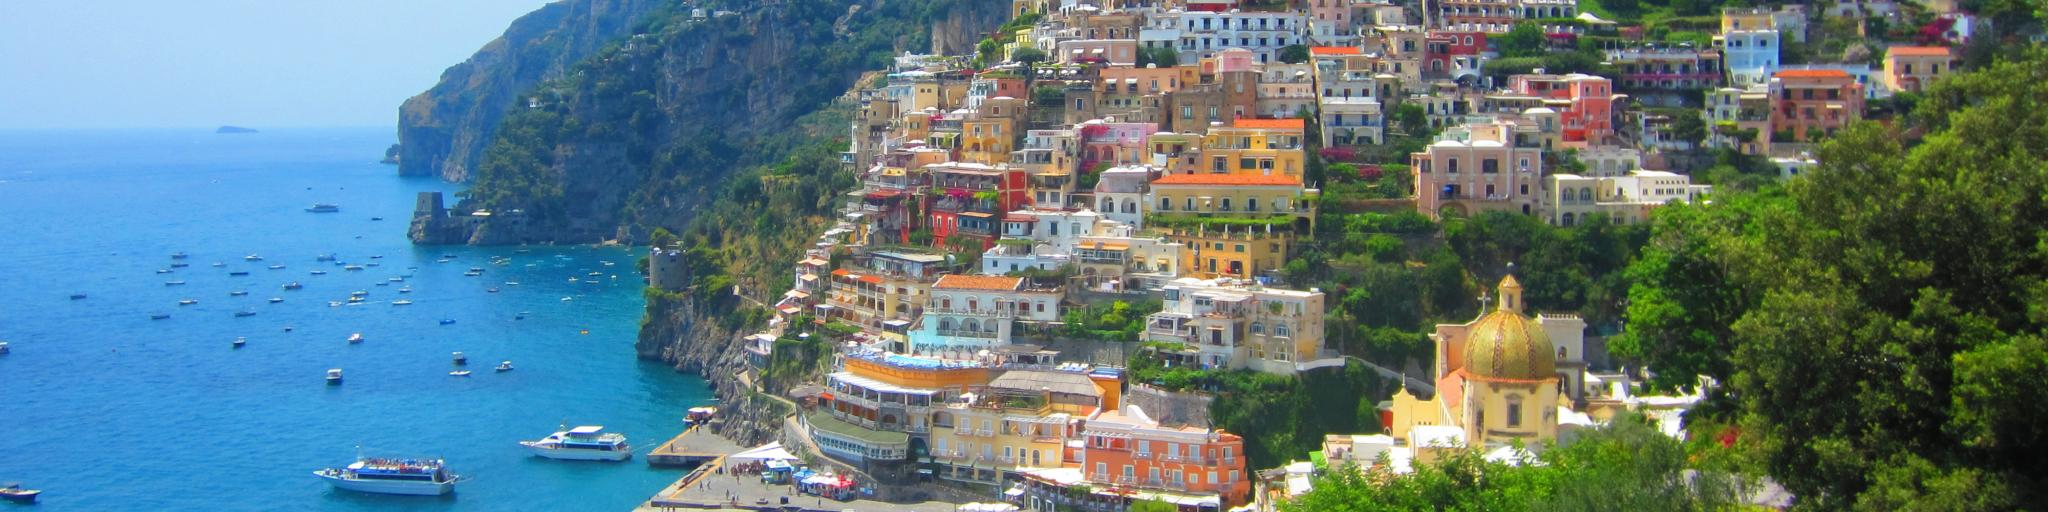 Colourful houses in Positano, Italy